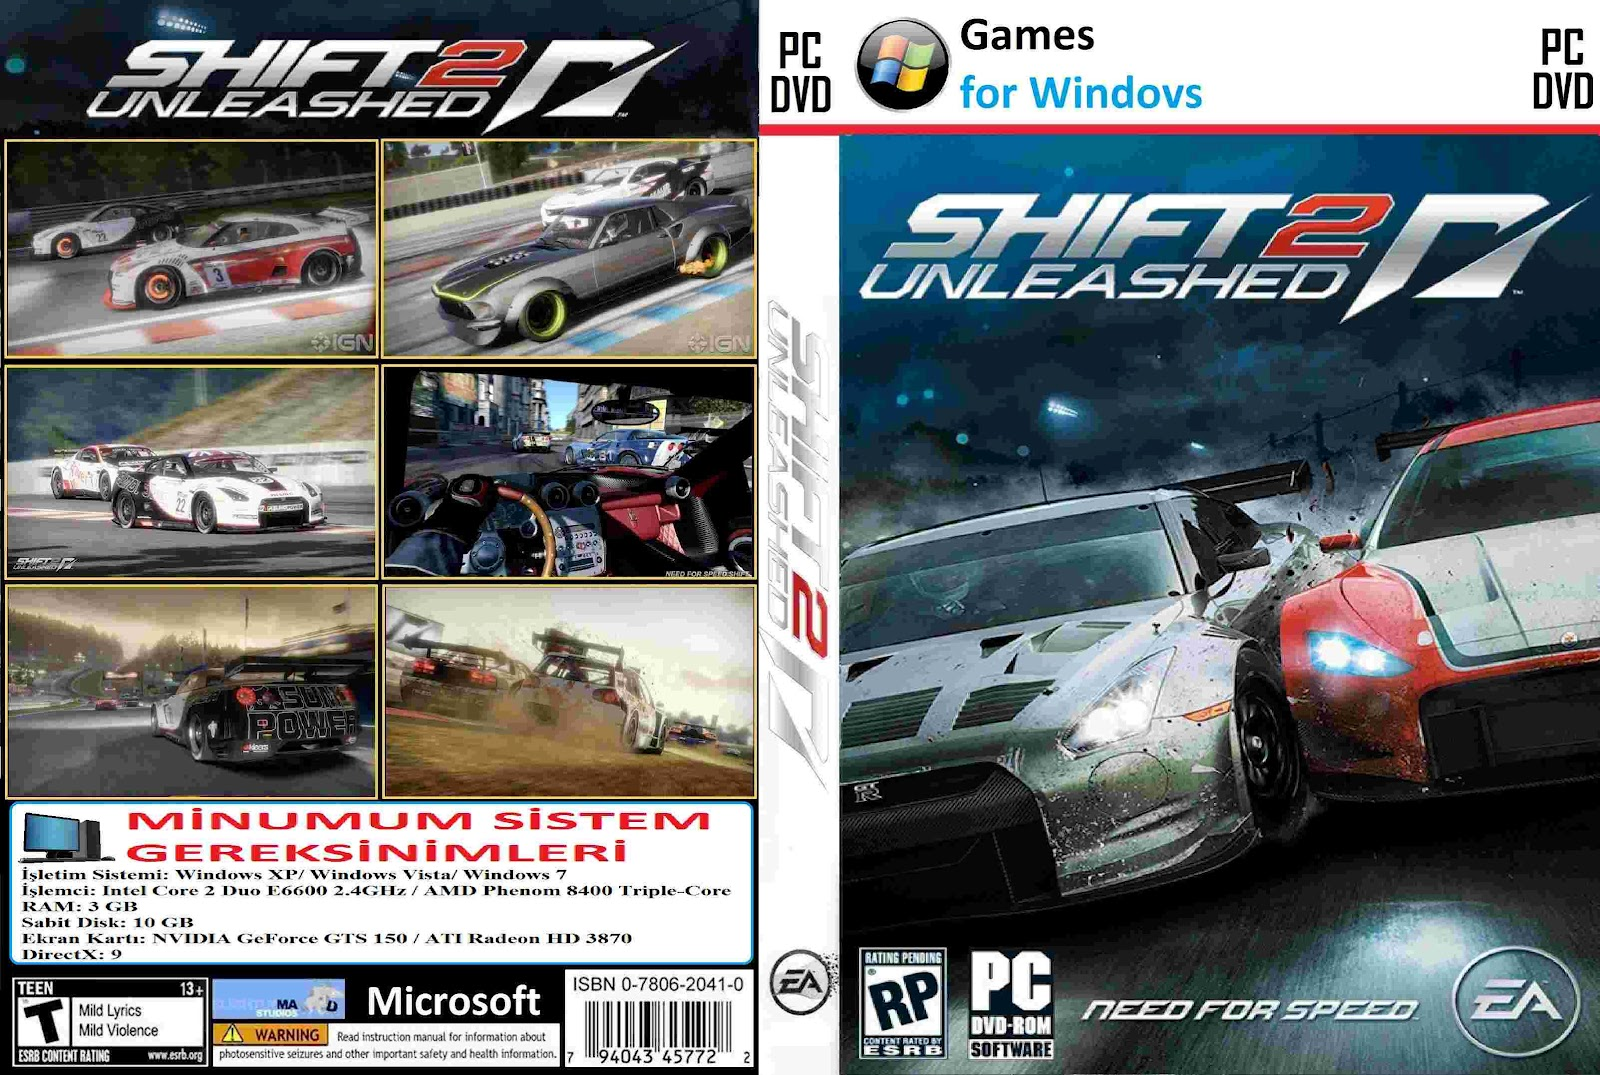 Tez Tour. Корпоративный отдых. Crack NFS shift 2 unleashed download free.